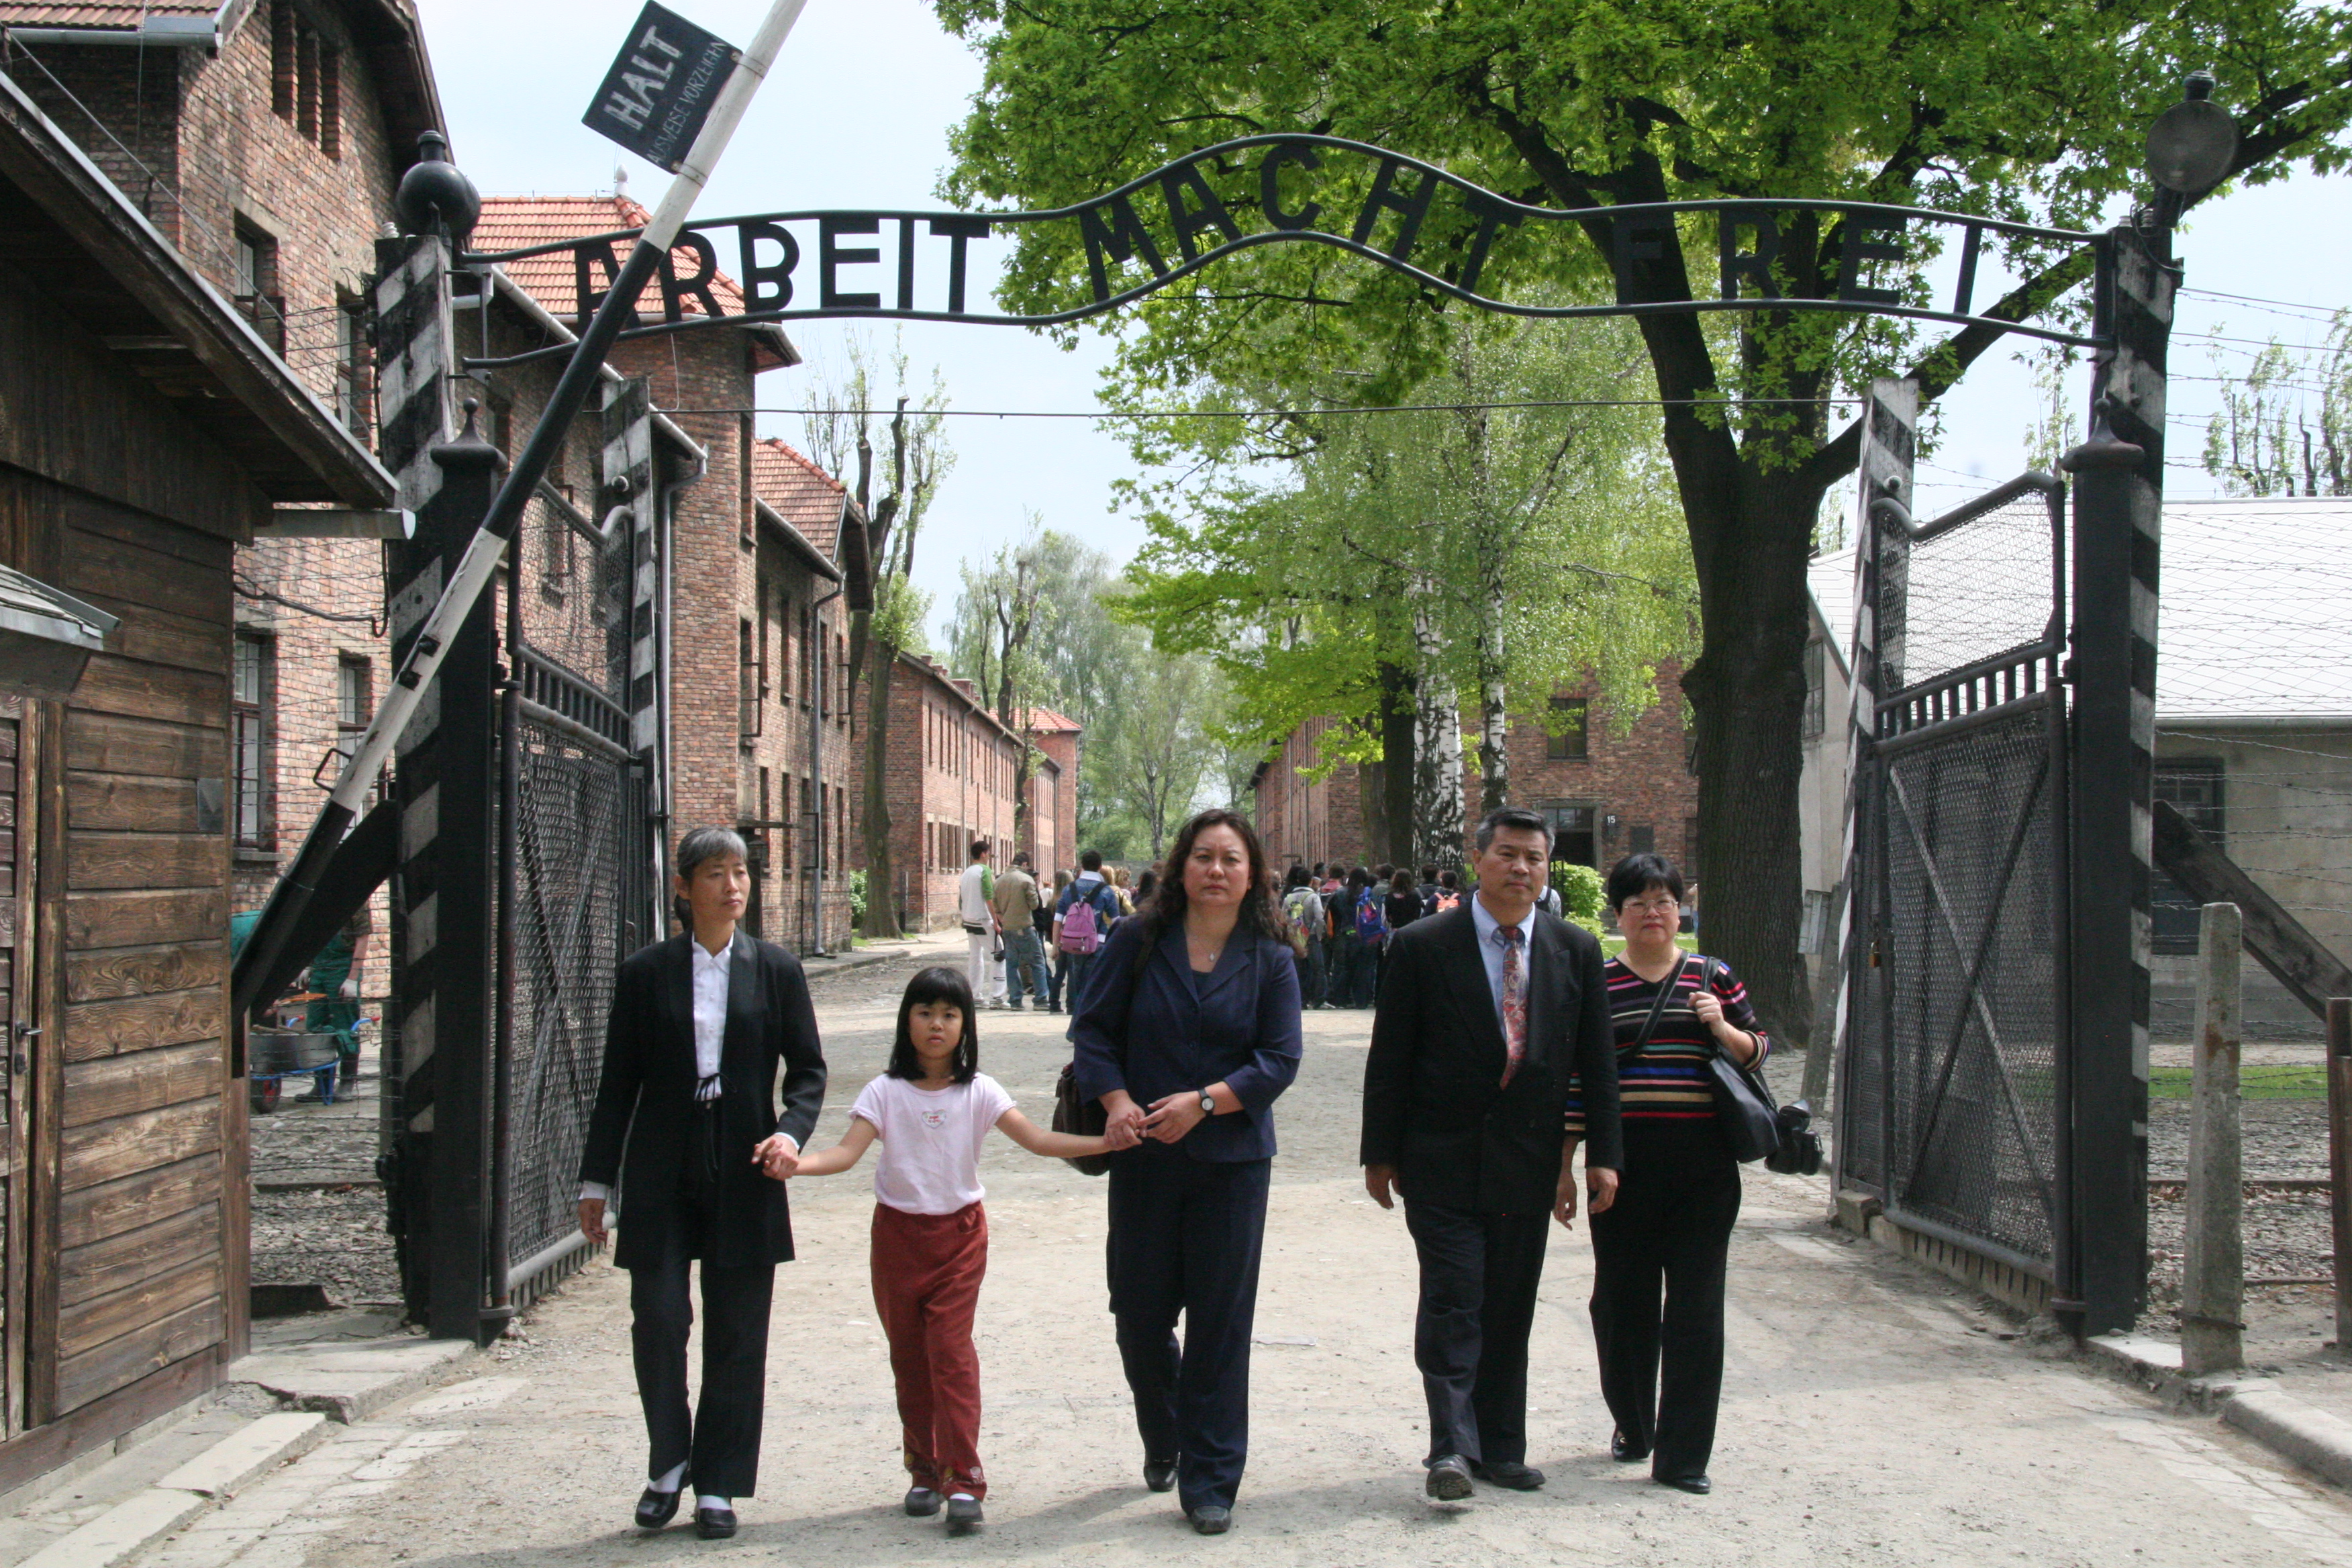 "NEVER AGAIN: The Chinese panelists at the ""Never Again: Appeal to the World"" forum on organ harvesting death camps in China walk through the infamous ""Work Shall Set You Free"" gate at the Auschwitz-Birkenau Memorial and Museum, on May 9, 2006. (Jan Jekielek/The Epoch Times)"